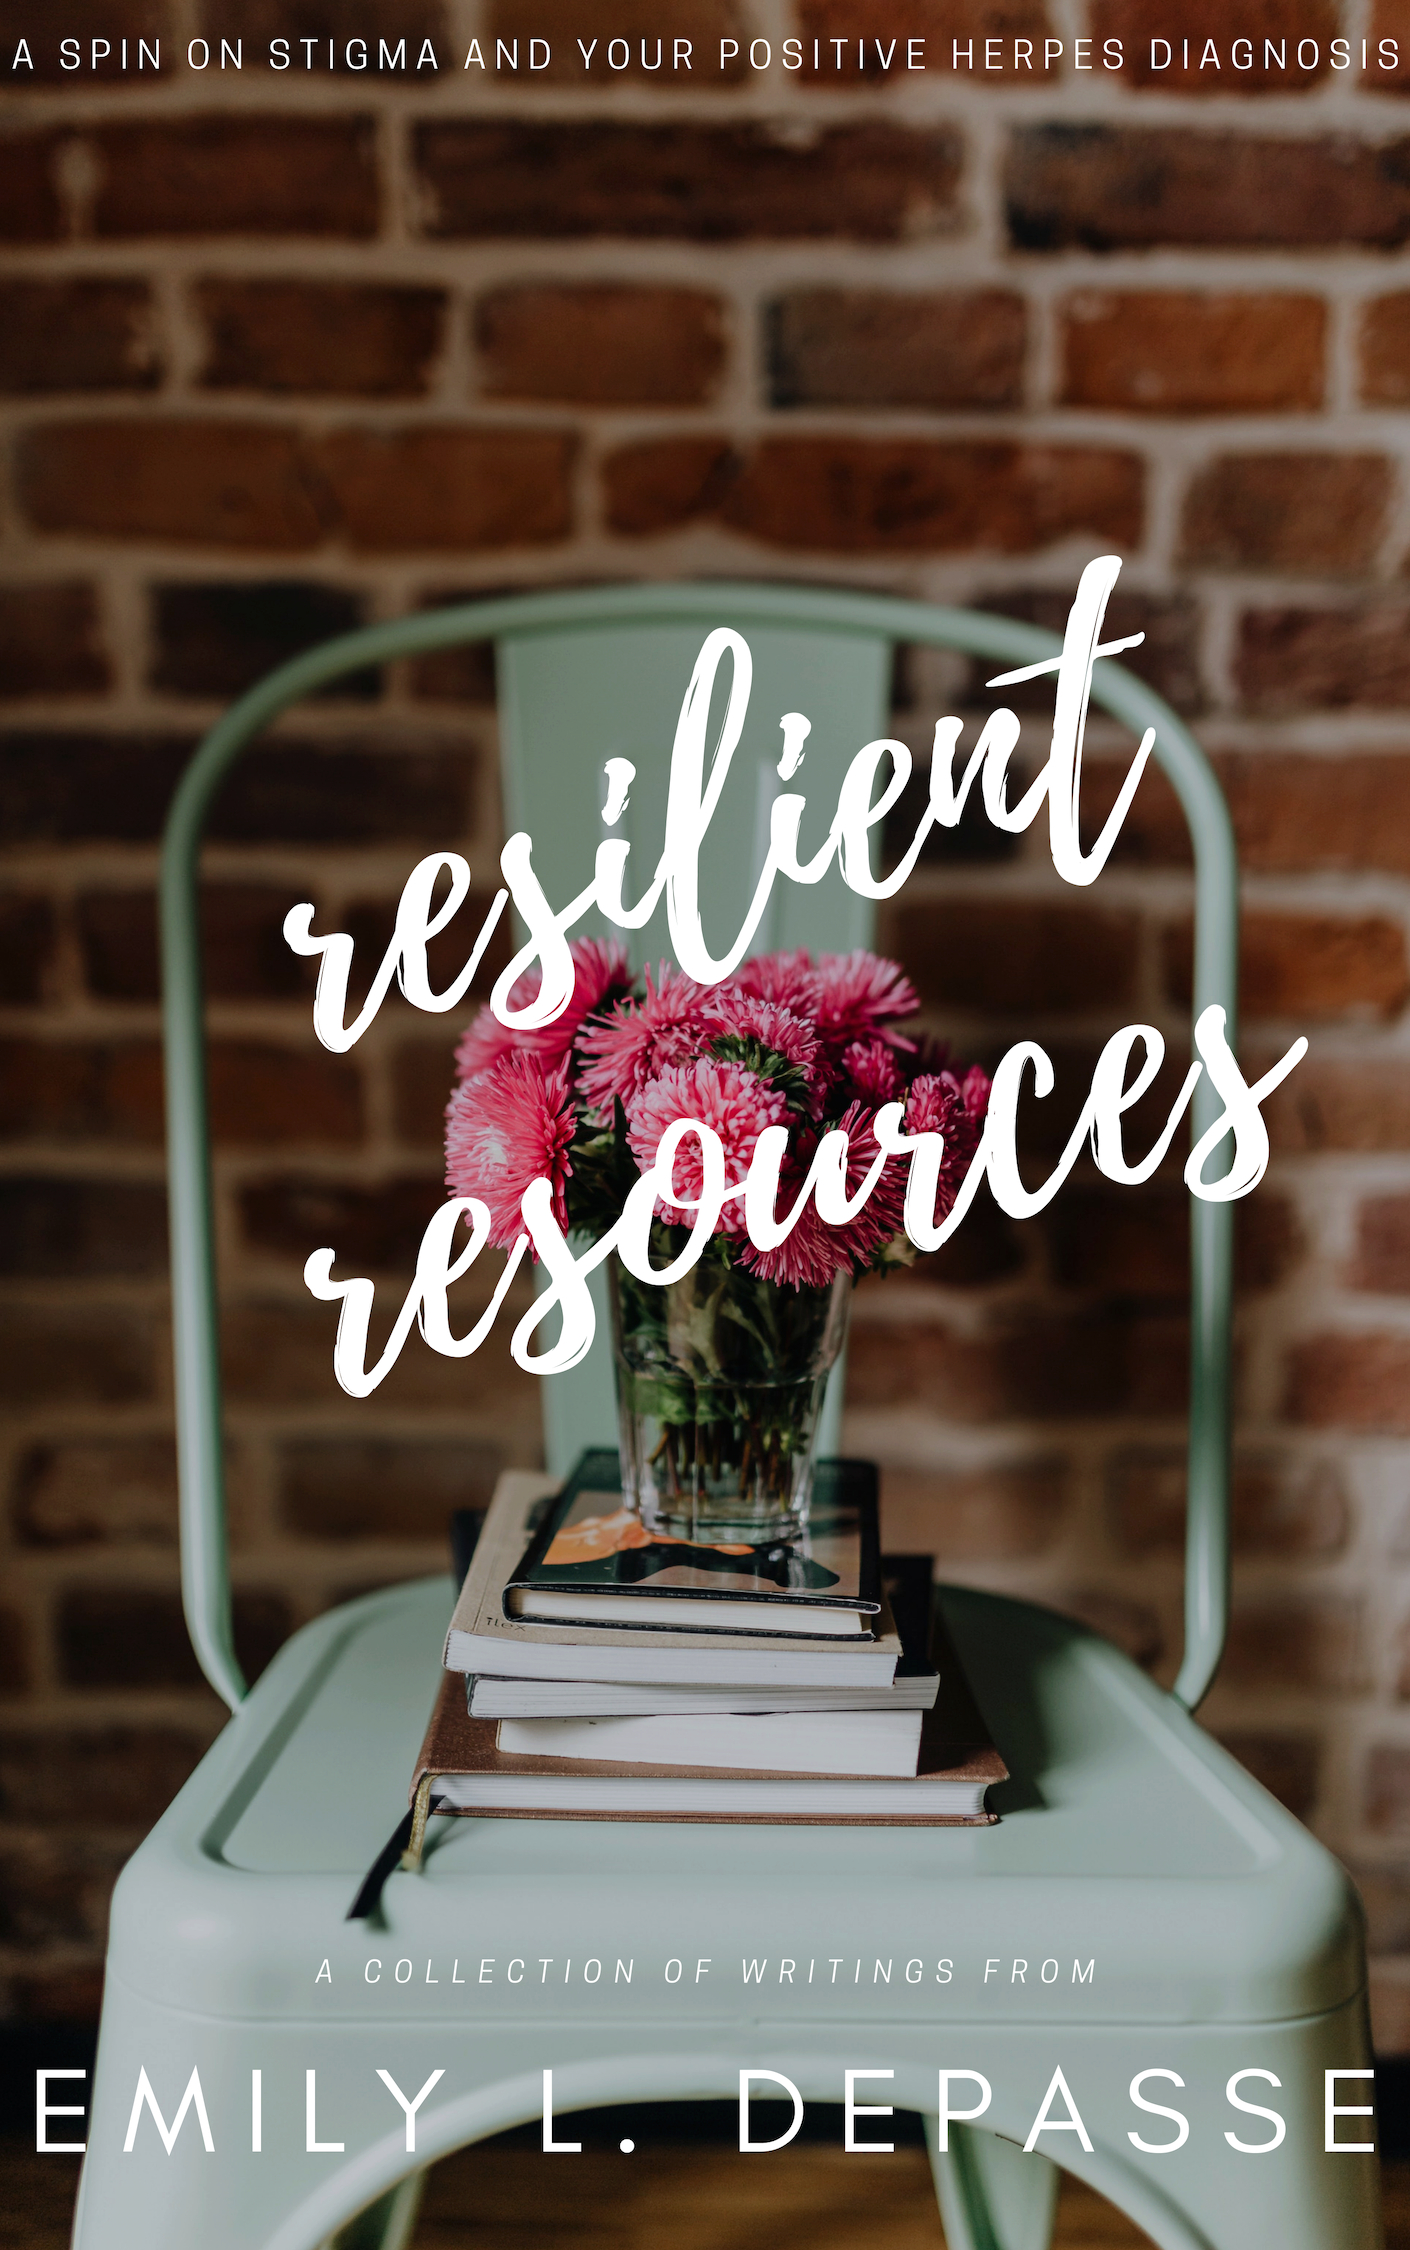 Copy of Resilient Resources .jpg